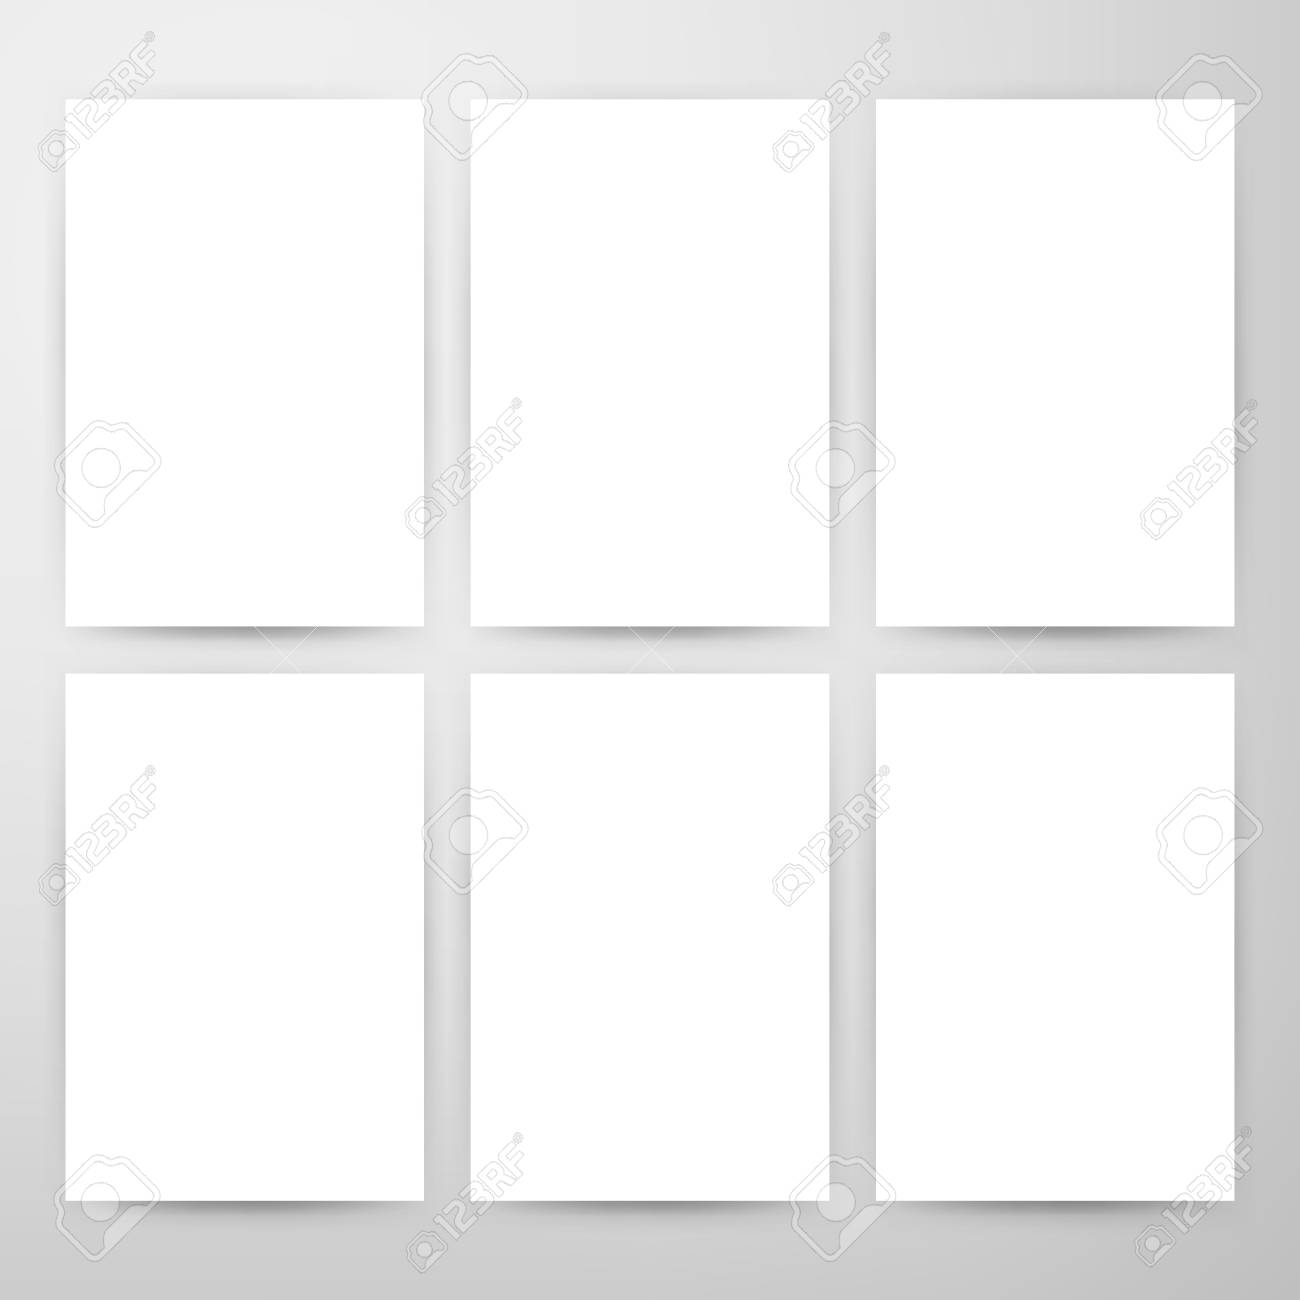 Blank Posters Mockup Template Vector Illustration Of Paper Sheets